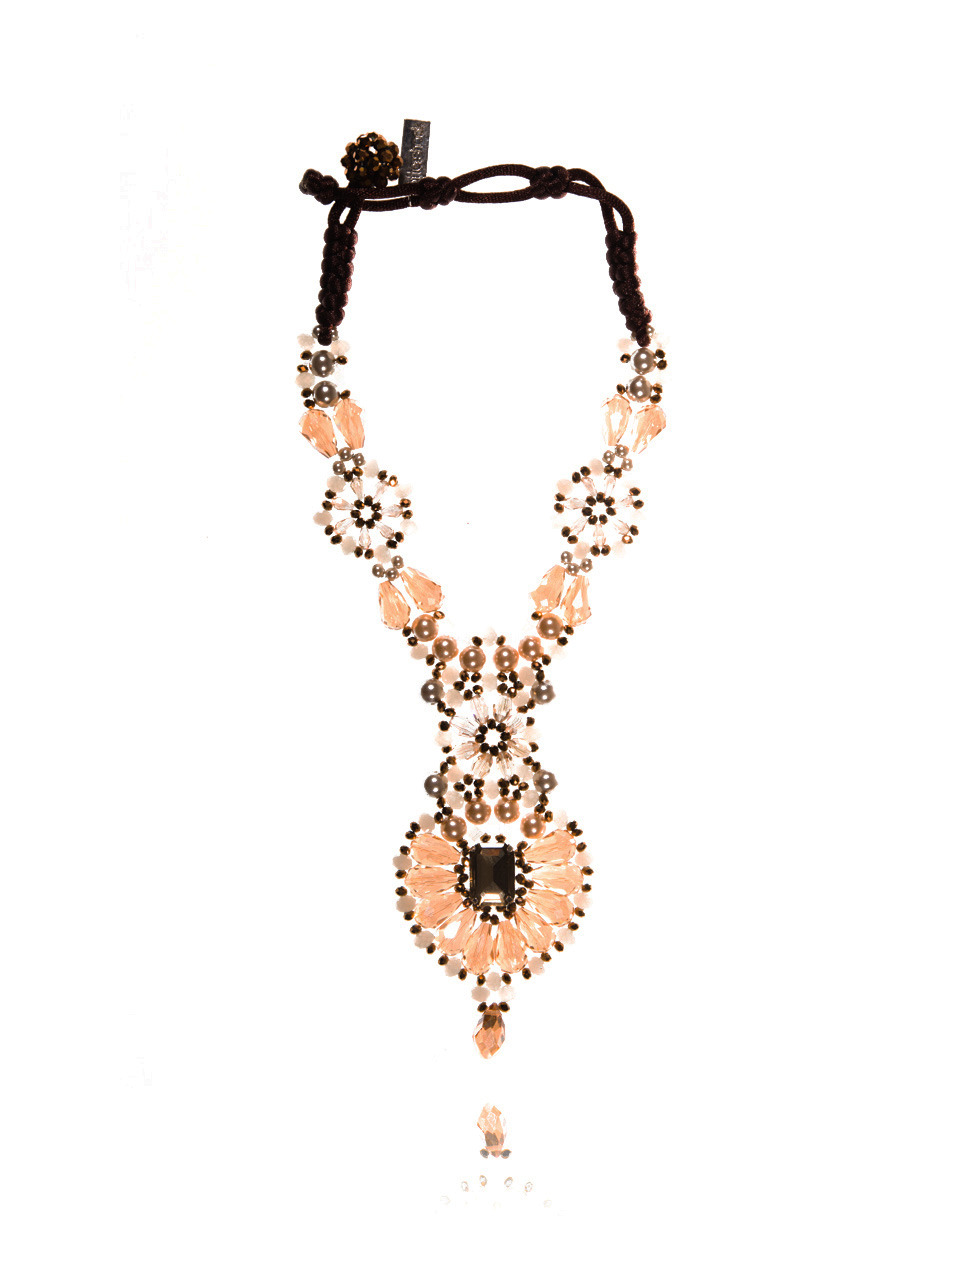 Georgia Beige Embellished Necklace - predominant colour: camel; secondary colour: black; occasions: evening, occasion, holiday, creative work; length: mid; size: large/oversized; material: fabric/cotton; finish: plain; embellishment: jewels/stone; style: bib/statement; season: a/w 2013